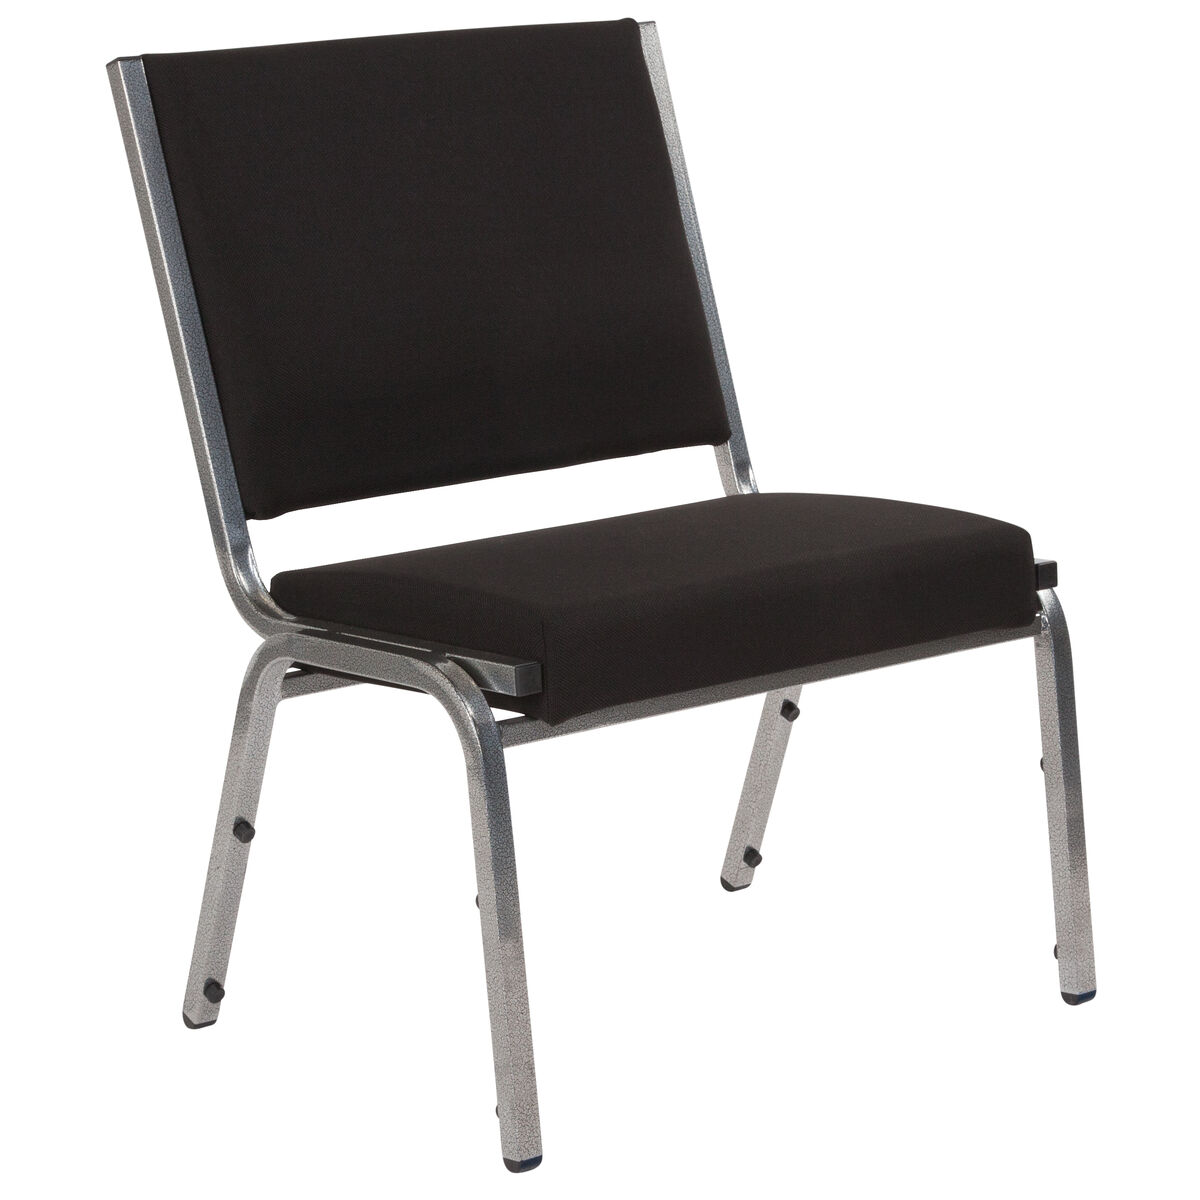 Black Antimicrobial Fabric Medical Reception Chair